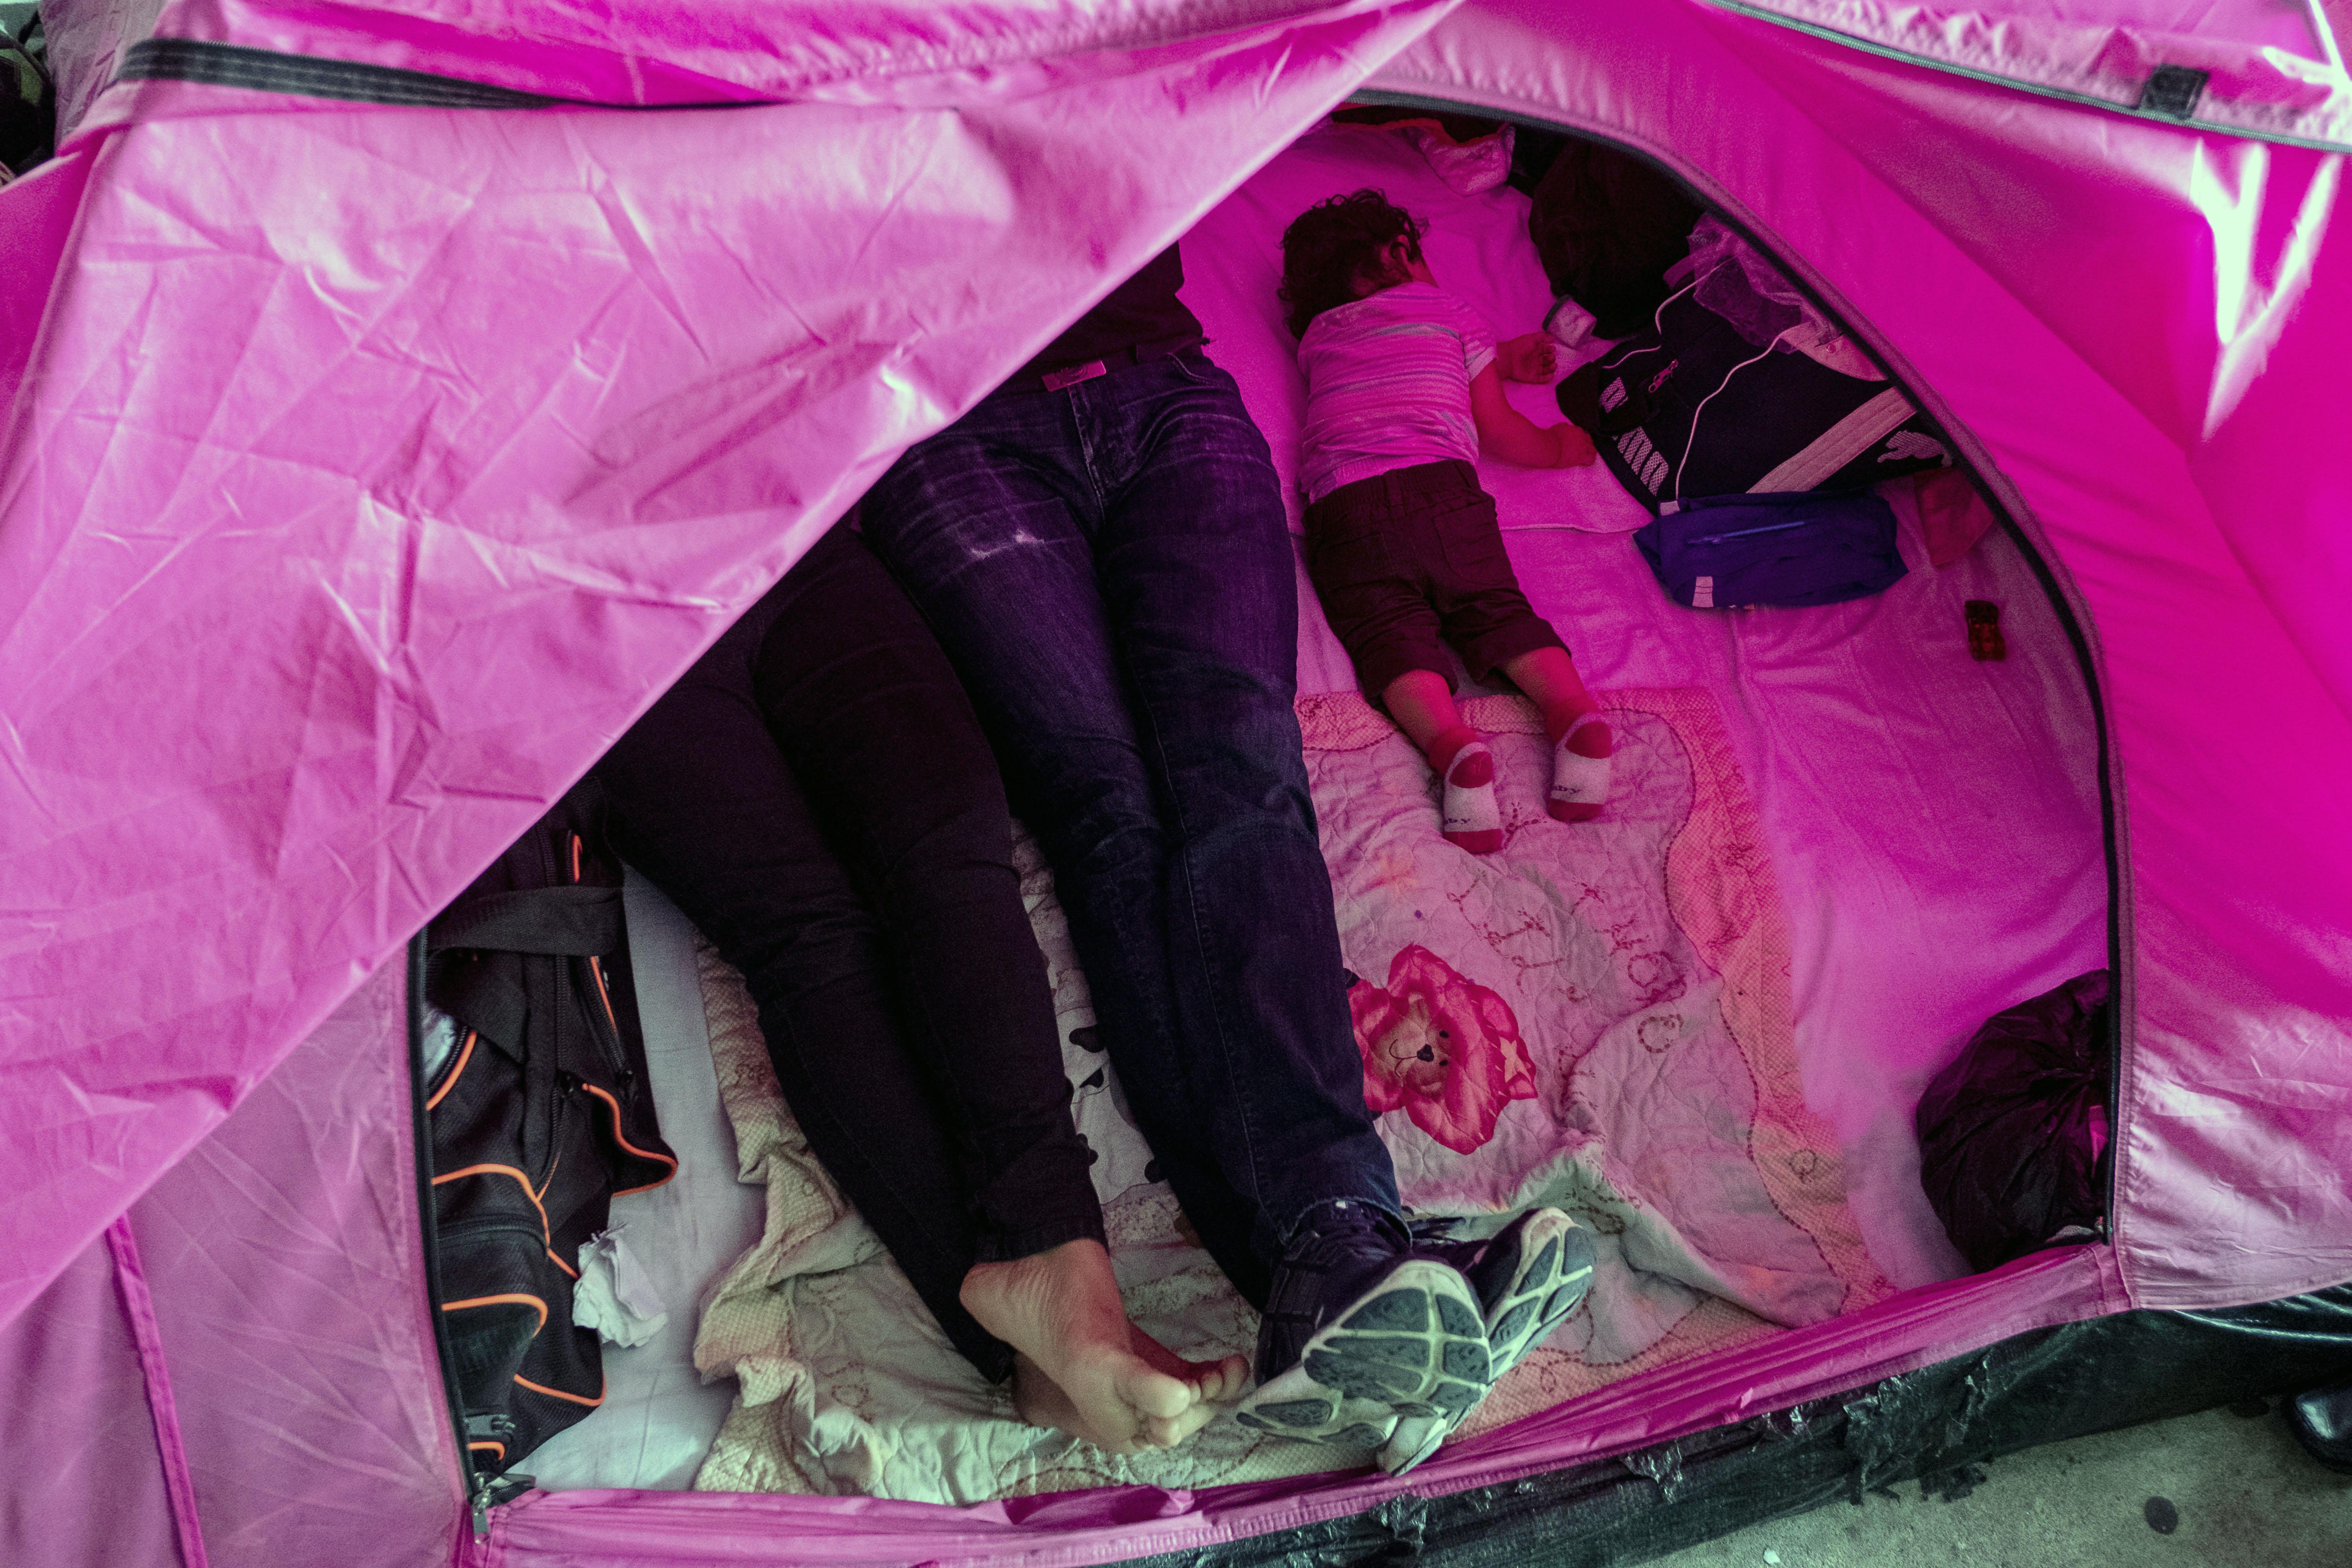 Asylum seekers from El Salvador rest in their tent in the Juventud 2000 migrant shelter in Tijuana on Wednesday.